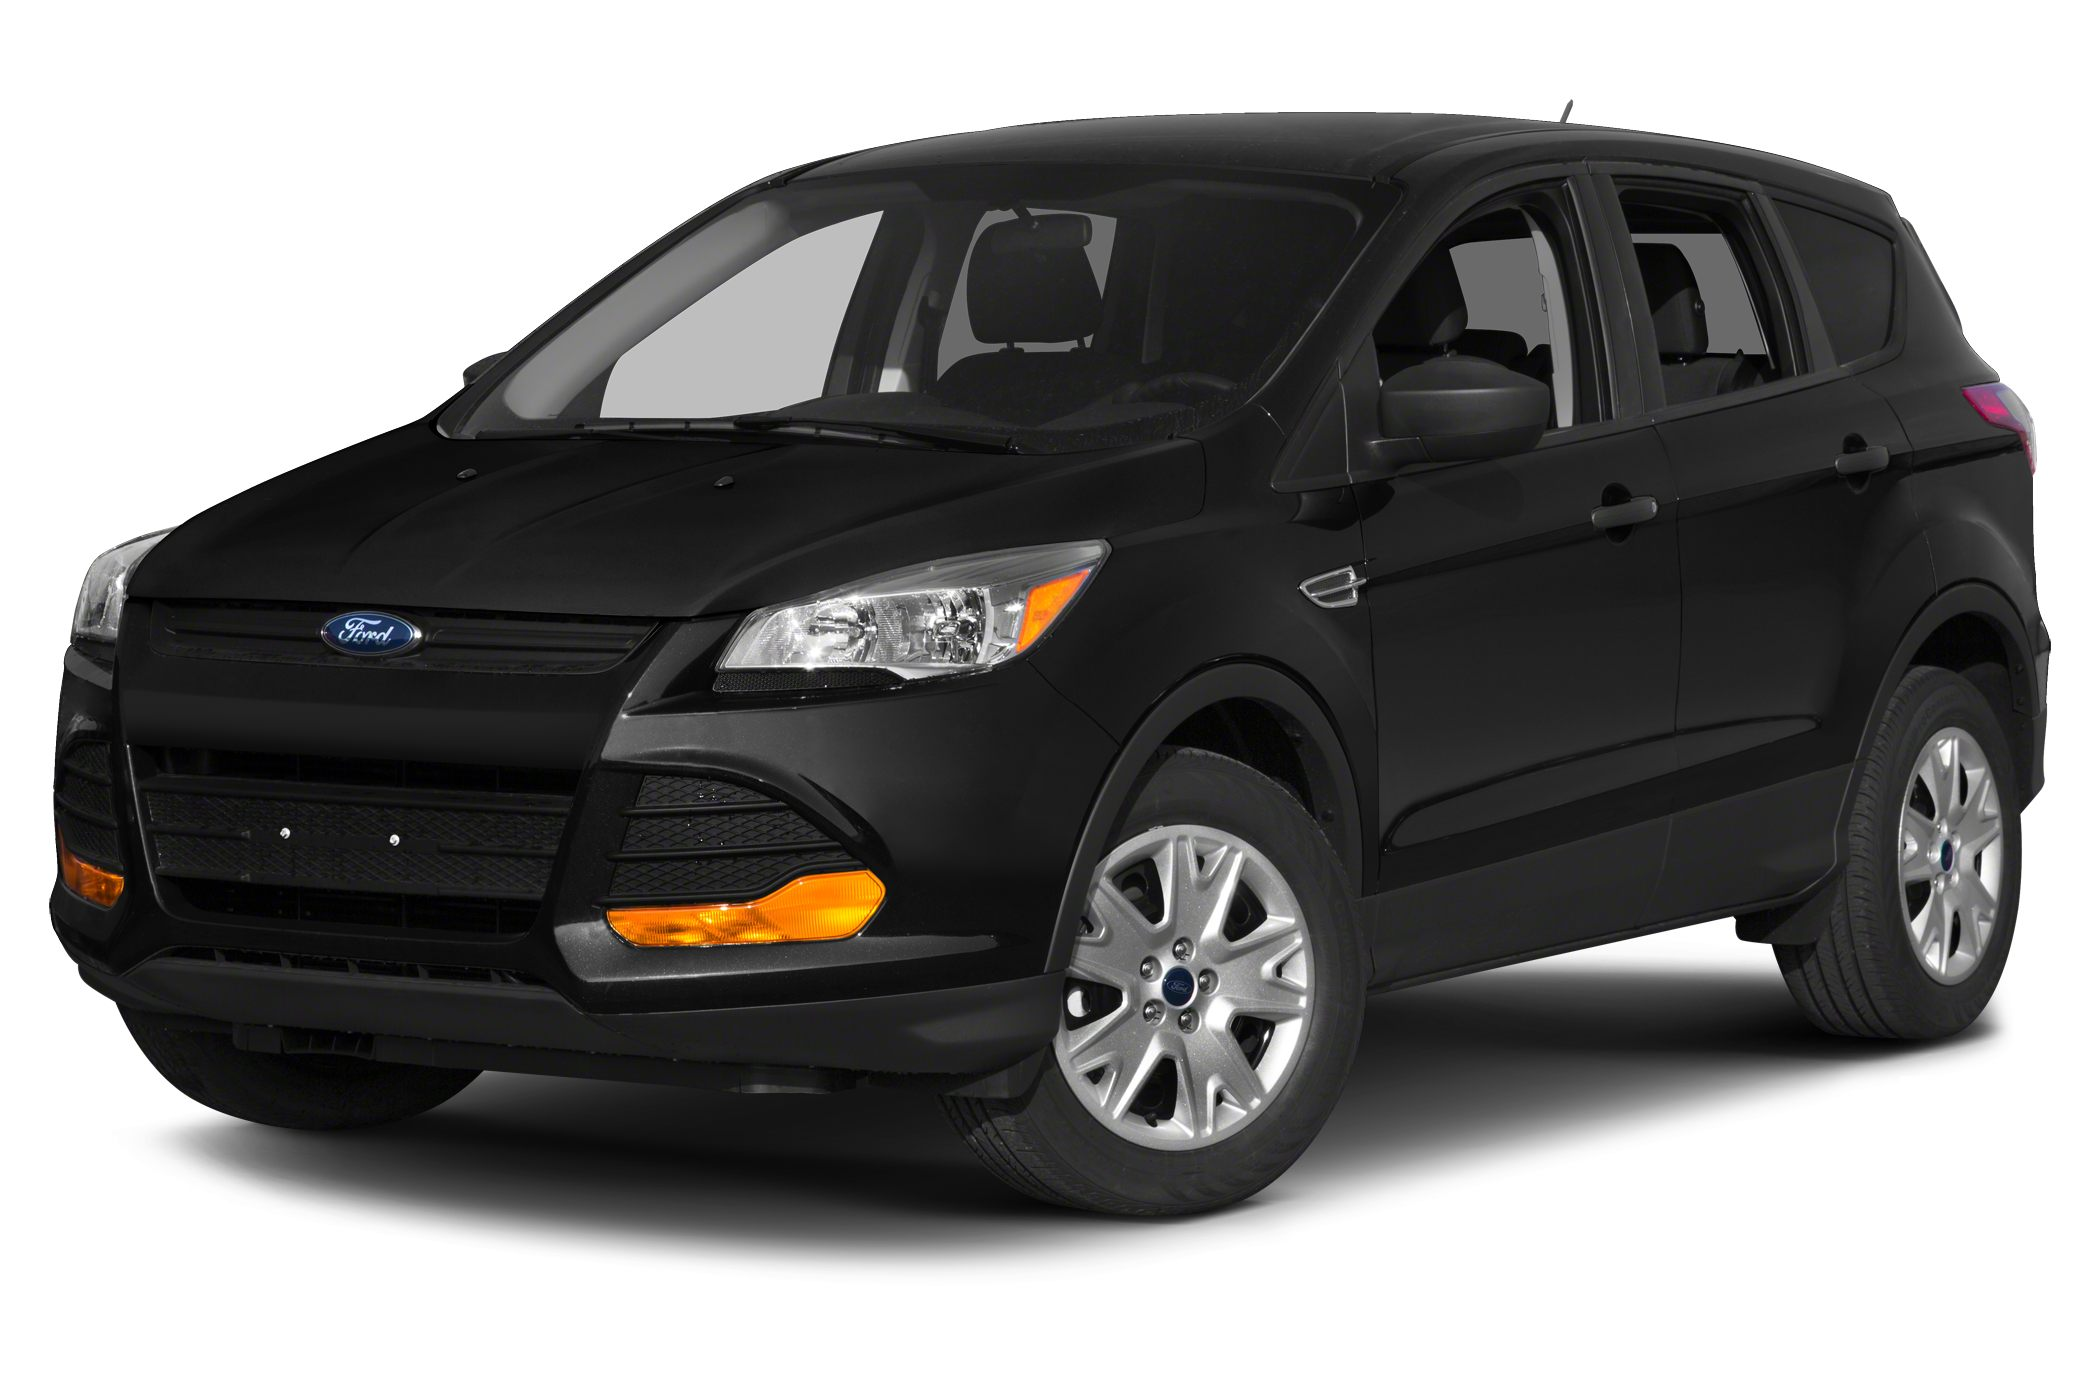 2014 Ford Escape S SUV for sale in Mount Airy for $19,000 with 37,770 miles